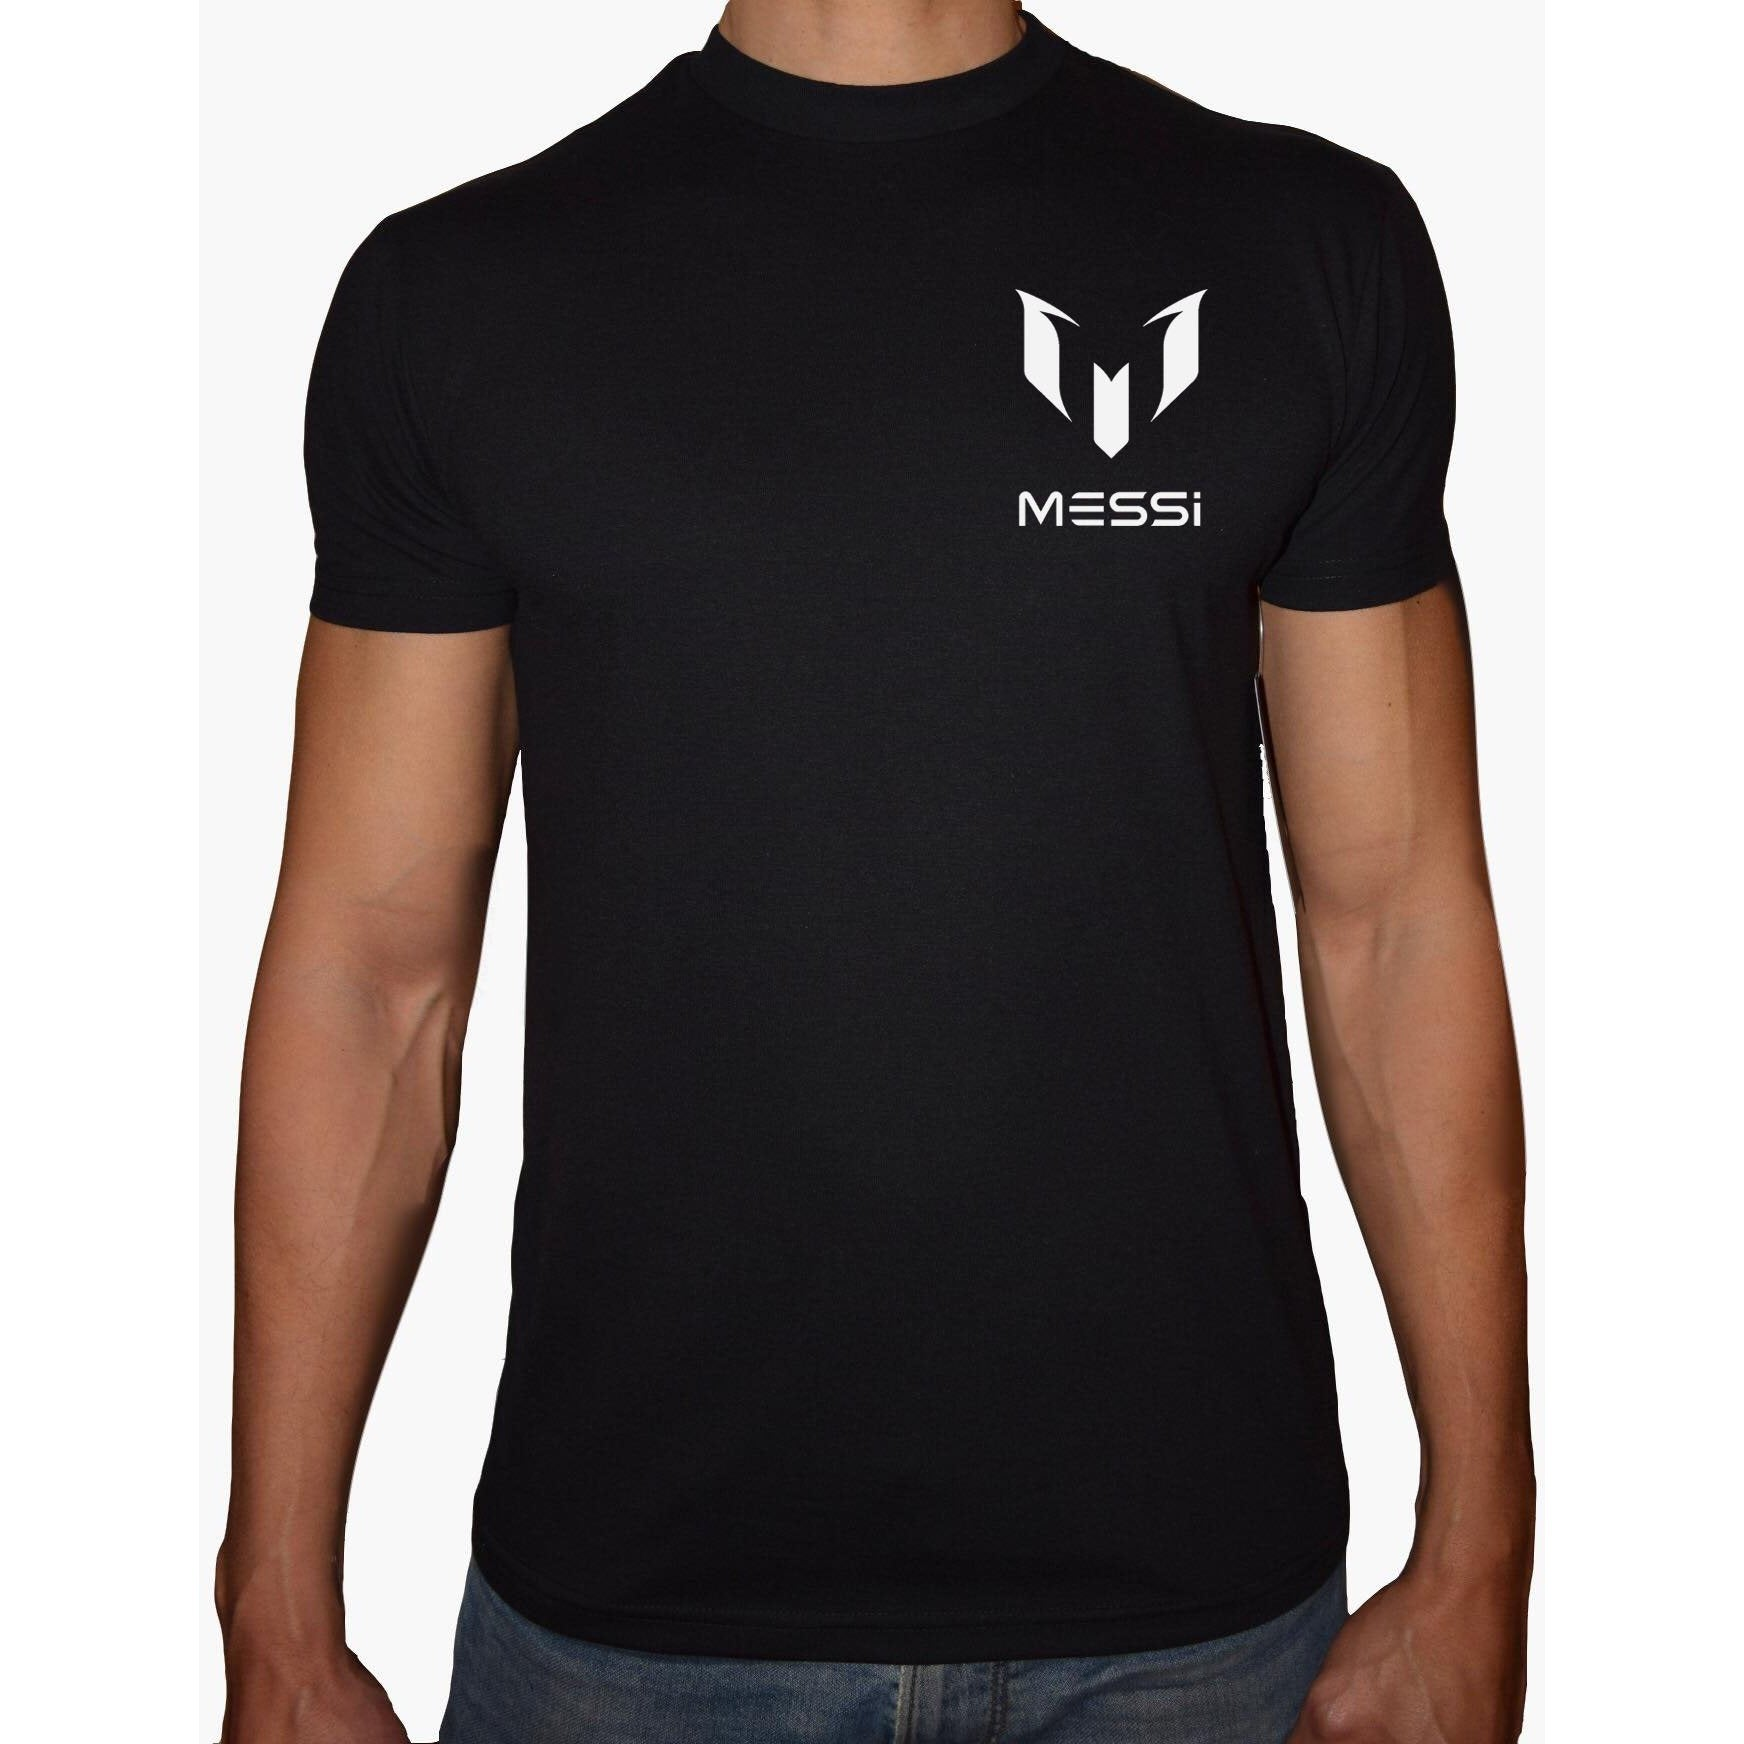 Phoenix BLACK Round Neck Printed T-Shirt Men (Messi)